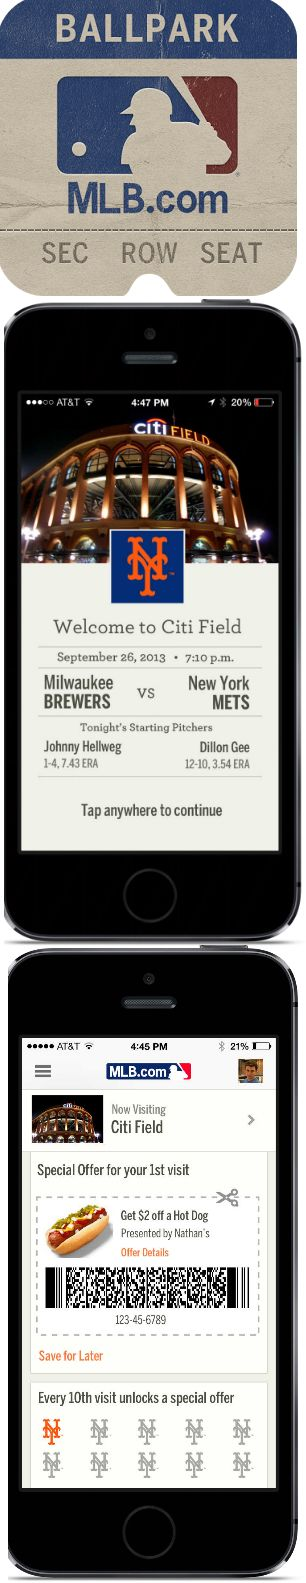 Major League Baseball, NY Mets :: iBeacon Campaign in 9/2013 :: Using the MLB mobile app, the NY Mets were one of the first brands to use iBeacons throughout the park to send fans push messages based on their proximity to locations. Fans received a welcome push message when they entered the park  a mobile coupon when they walked past vendors. They also used iBeacons to promote special locations like their trophy case. — Drew Beechler, Content Strategist, Salesforce ExactTarget Marketing…